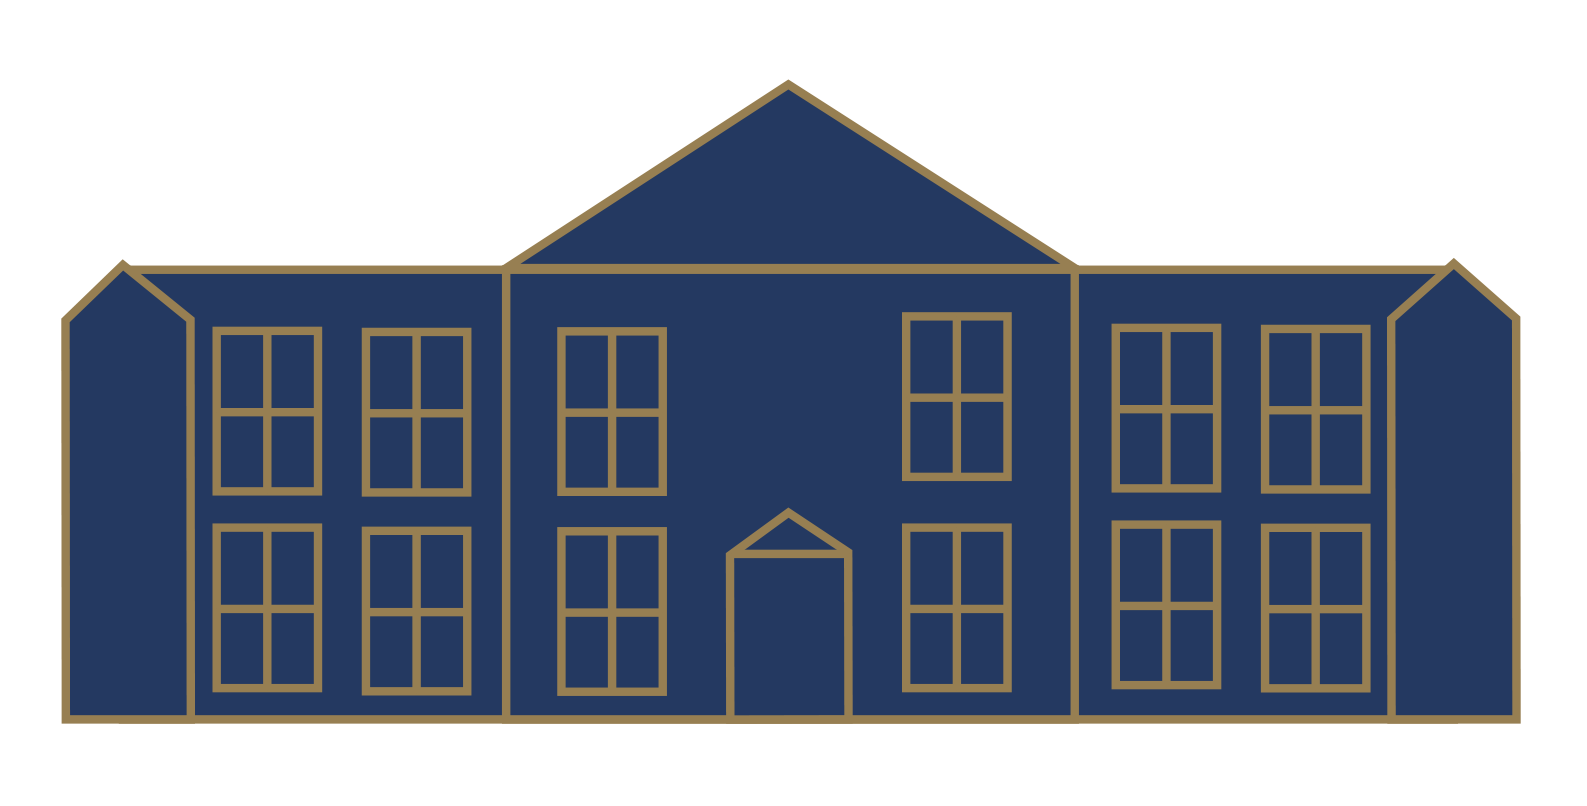 Manor-House-Gold-with-navy-fill.png